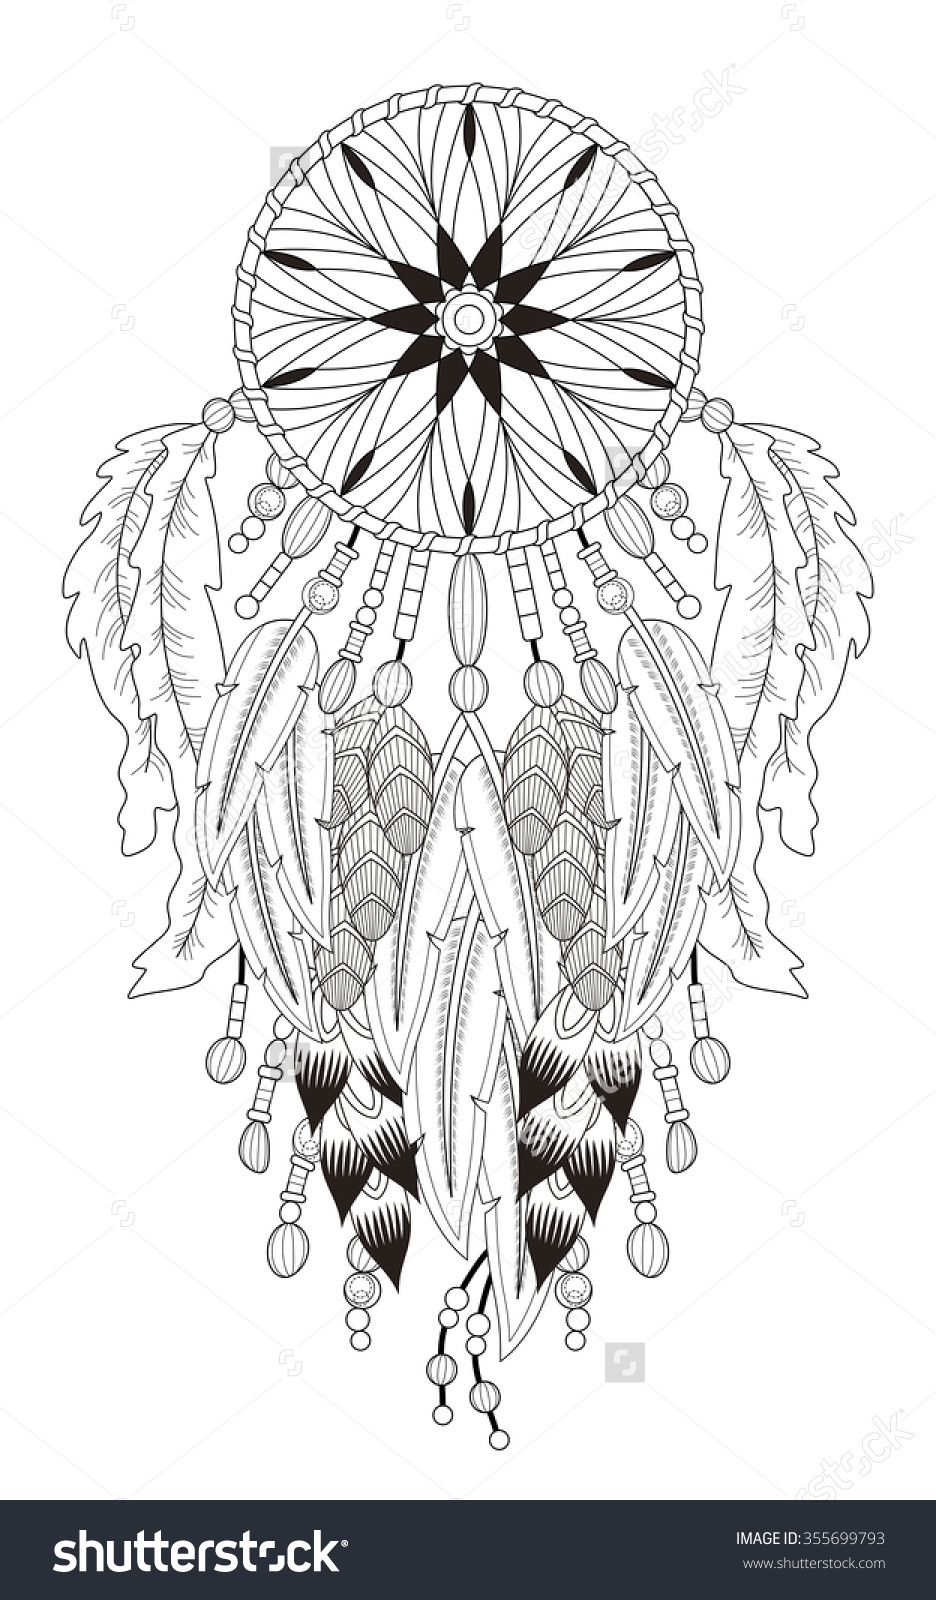 Pin von Ann Armstrong auf coloring pages | Pinterest | Traumfänger ...